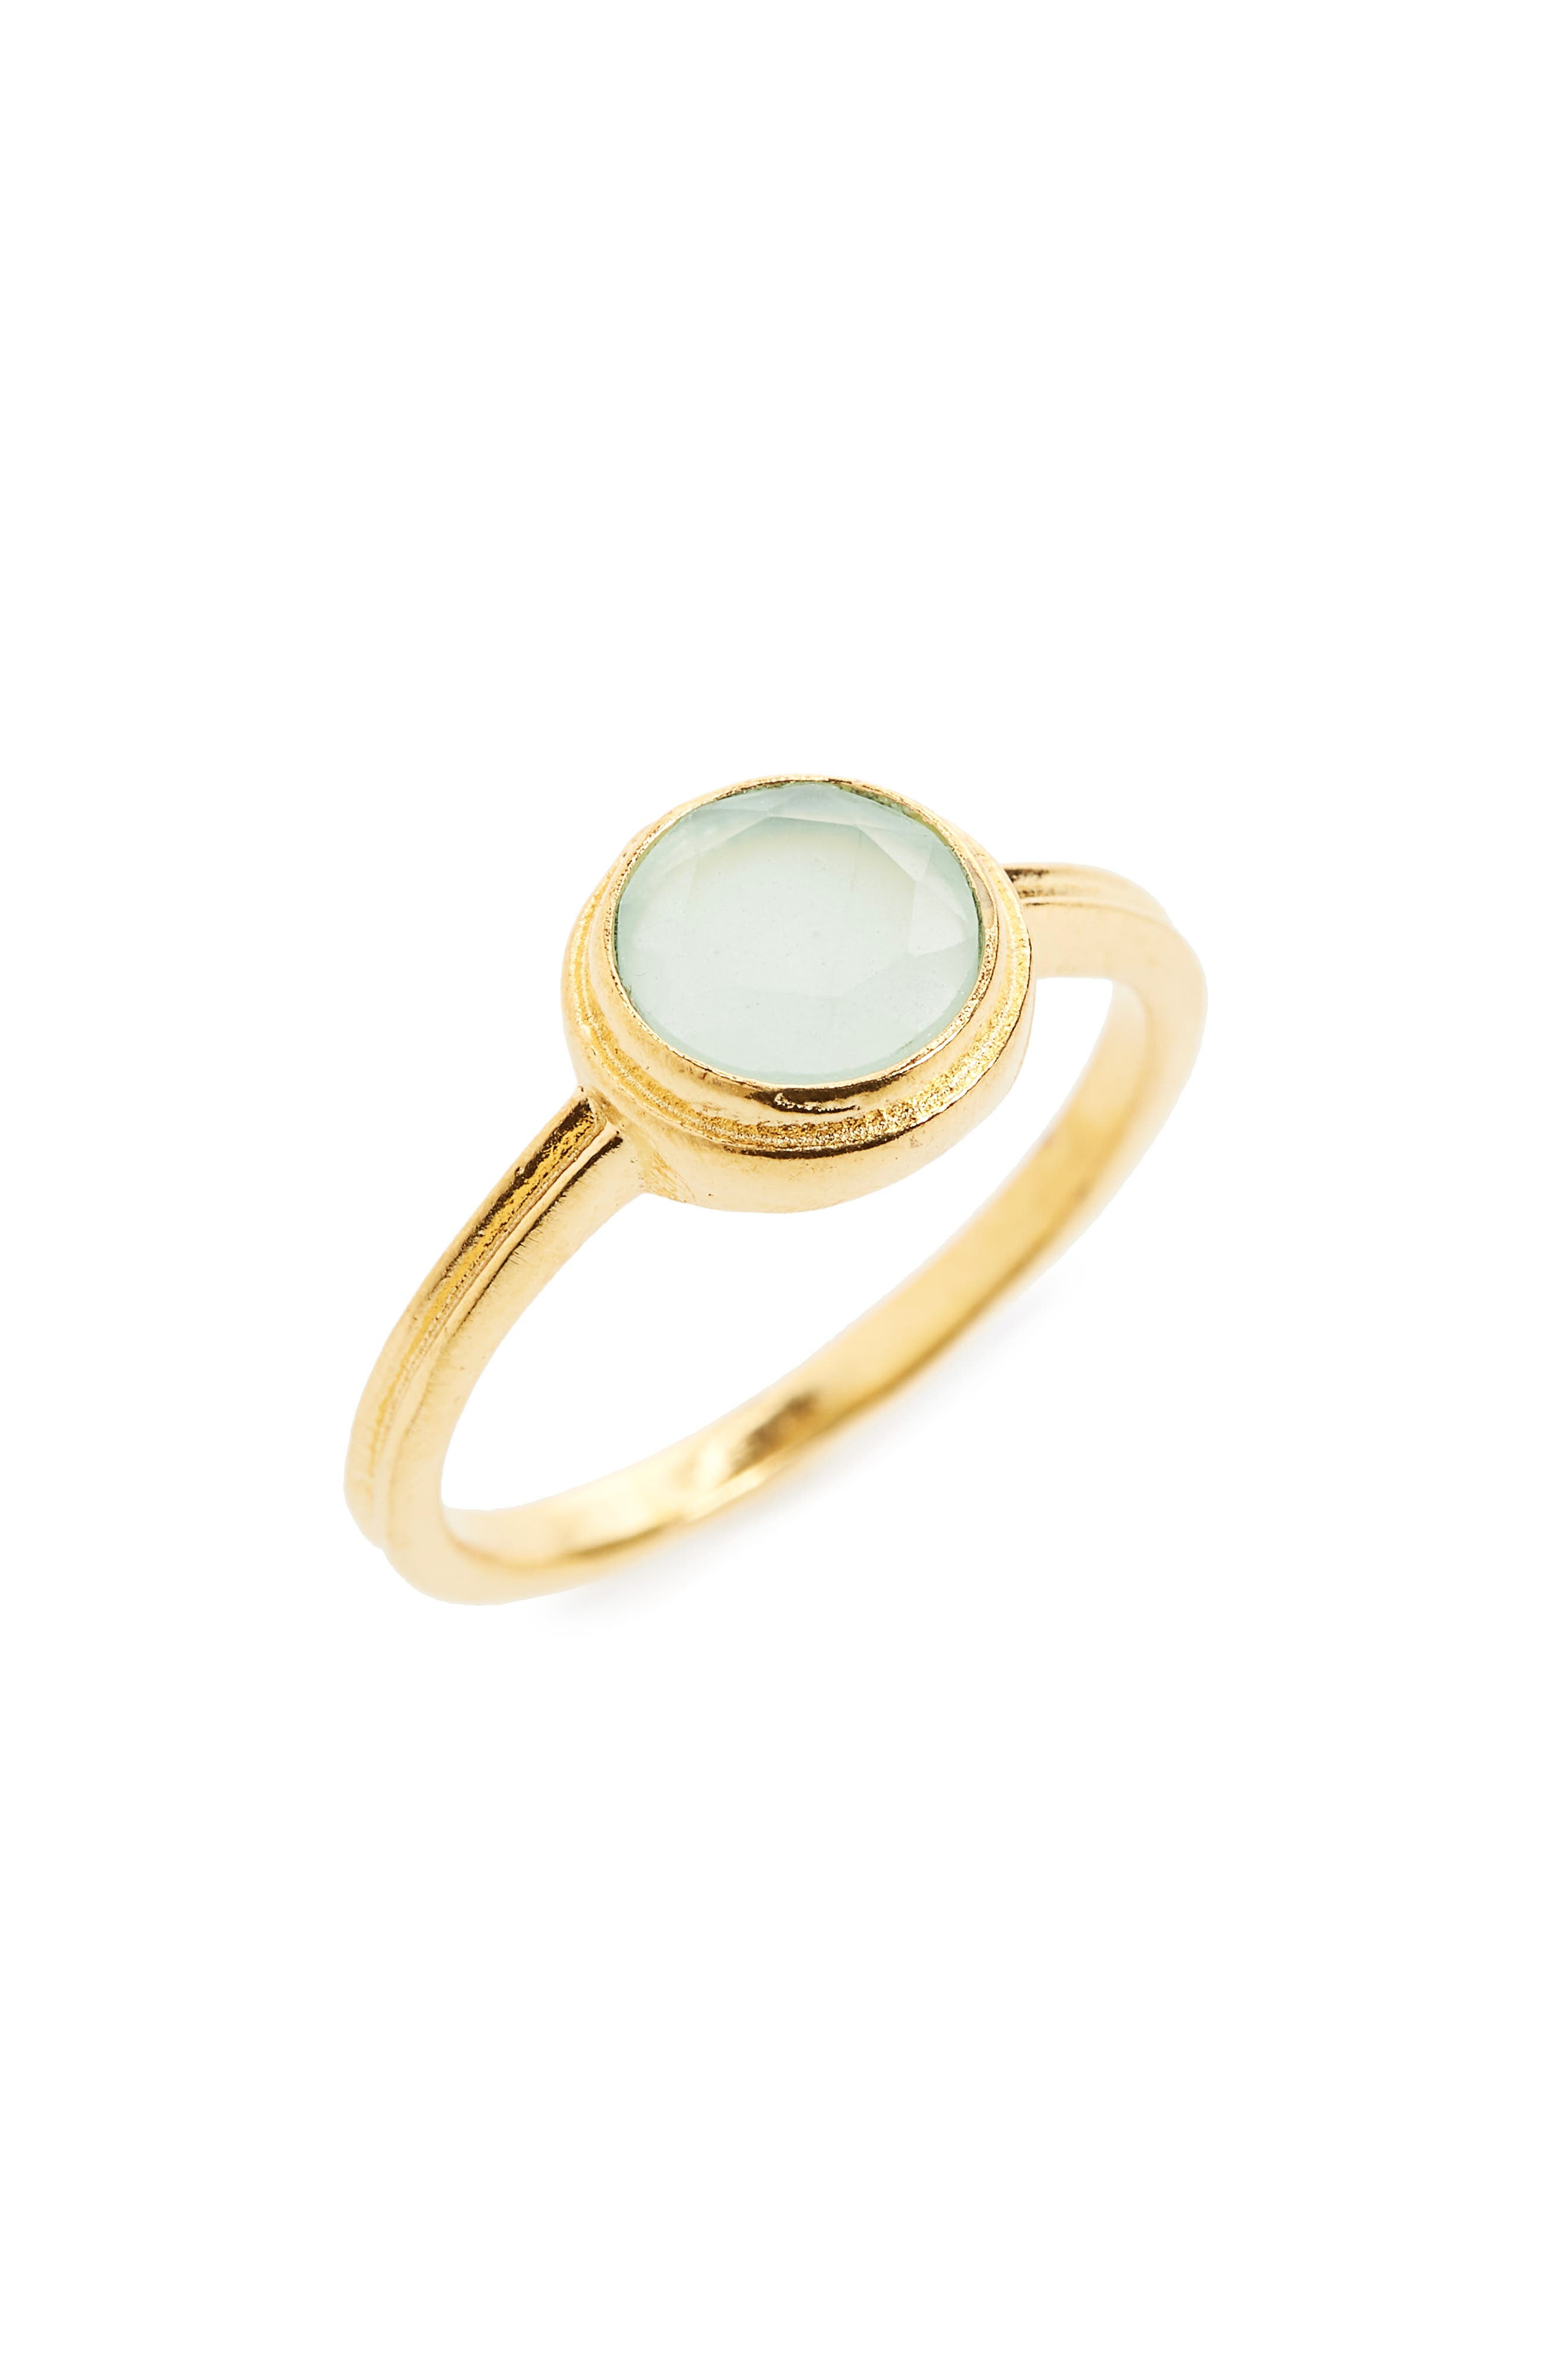 Buttercup Ring,                         Main,                         color, 440